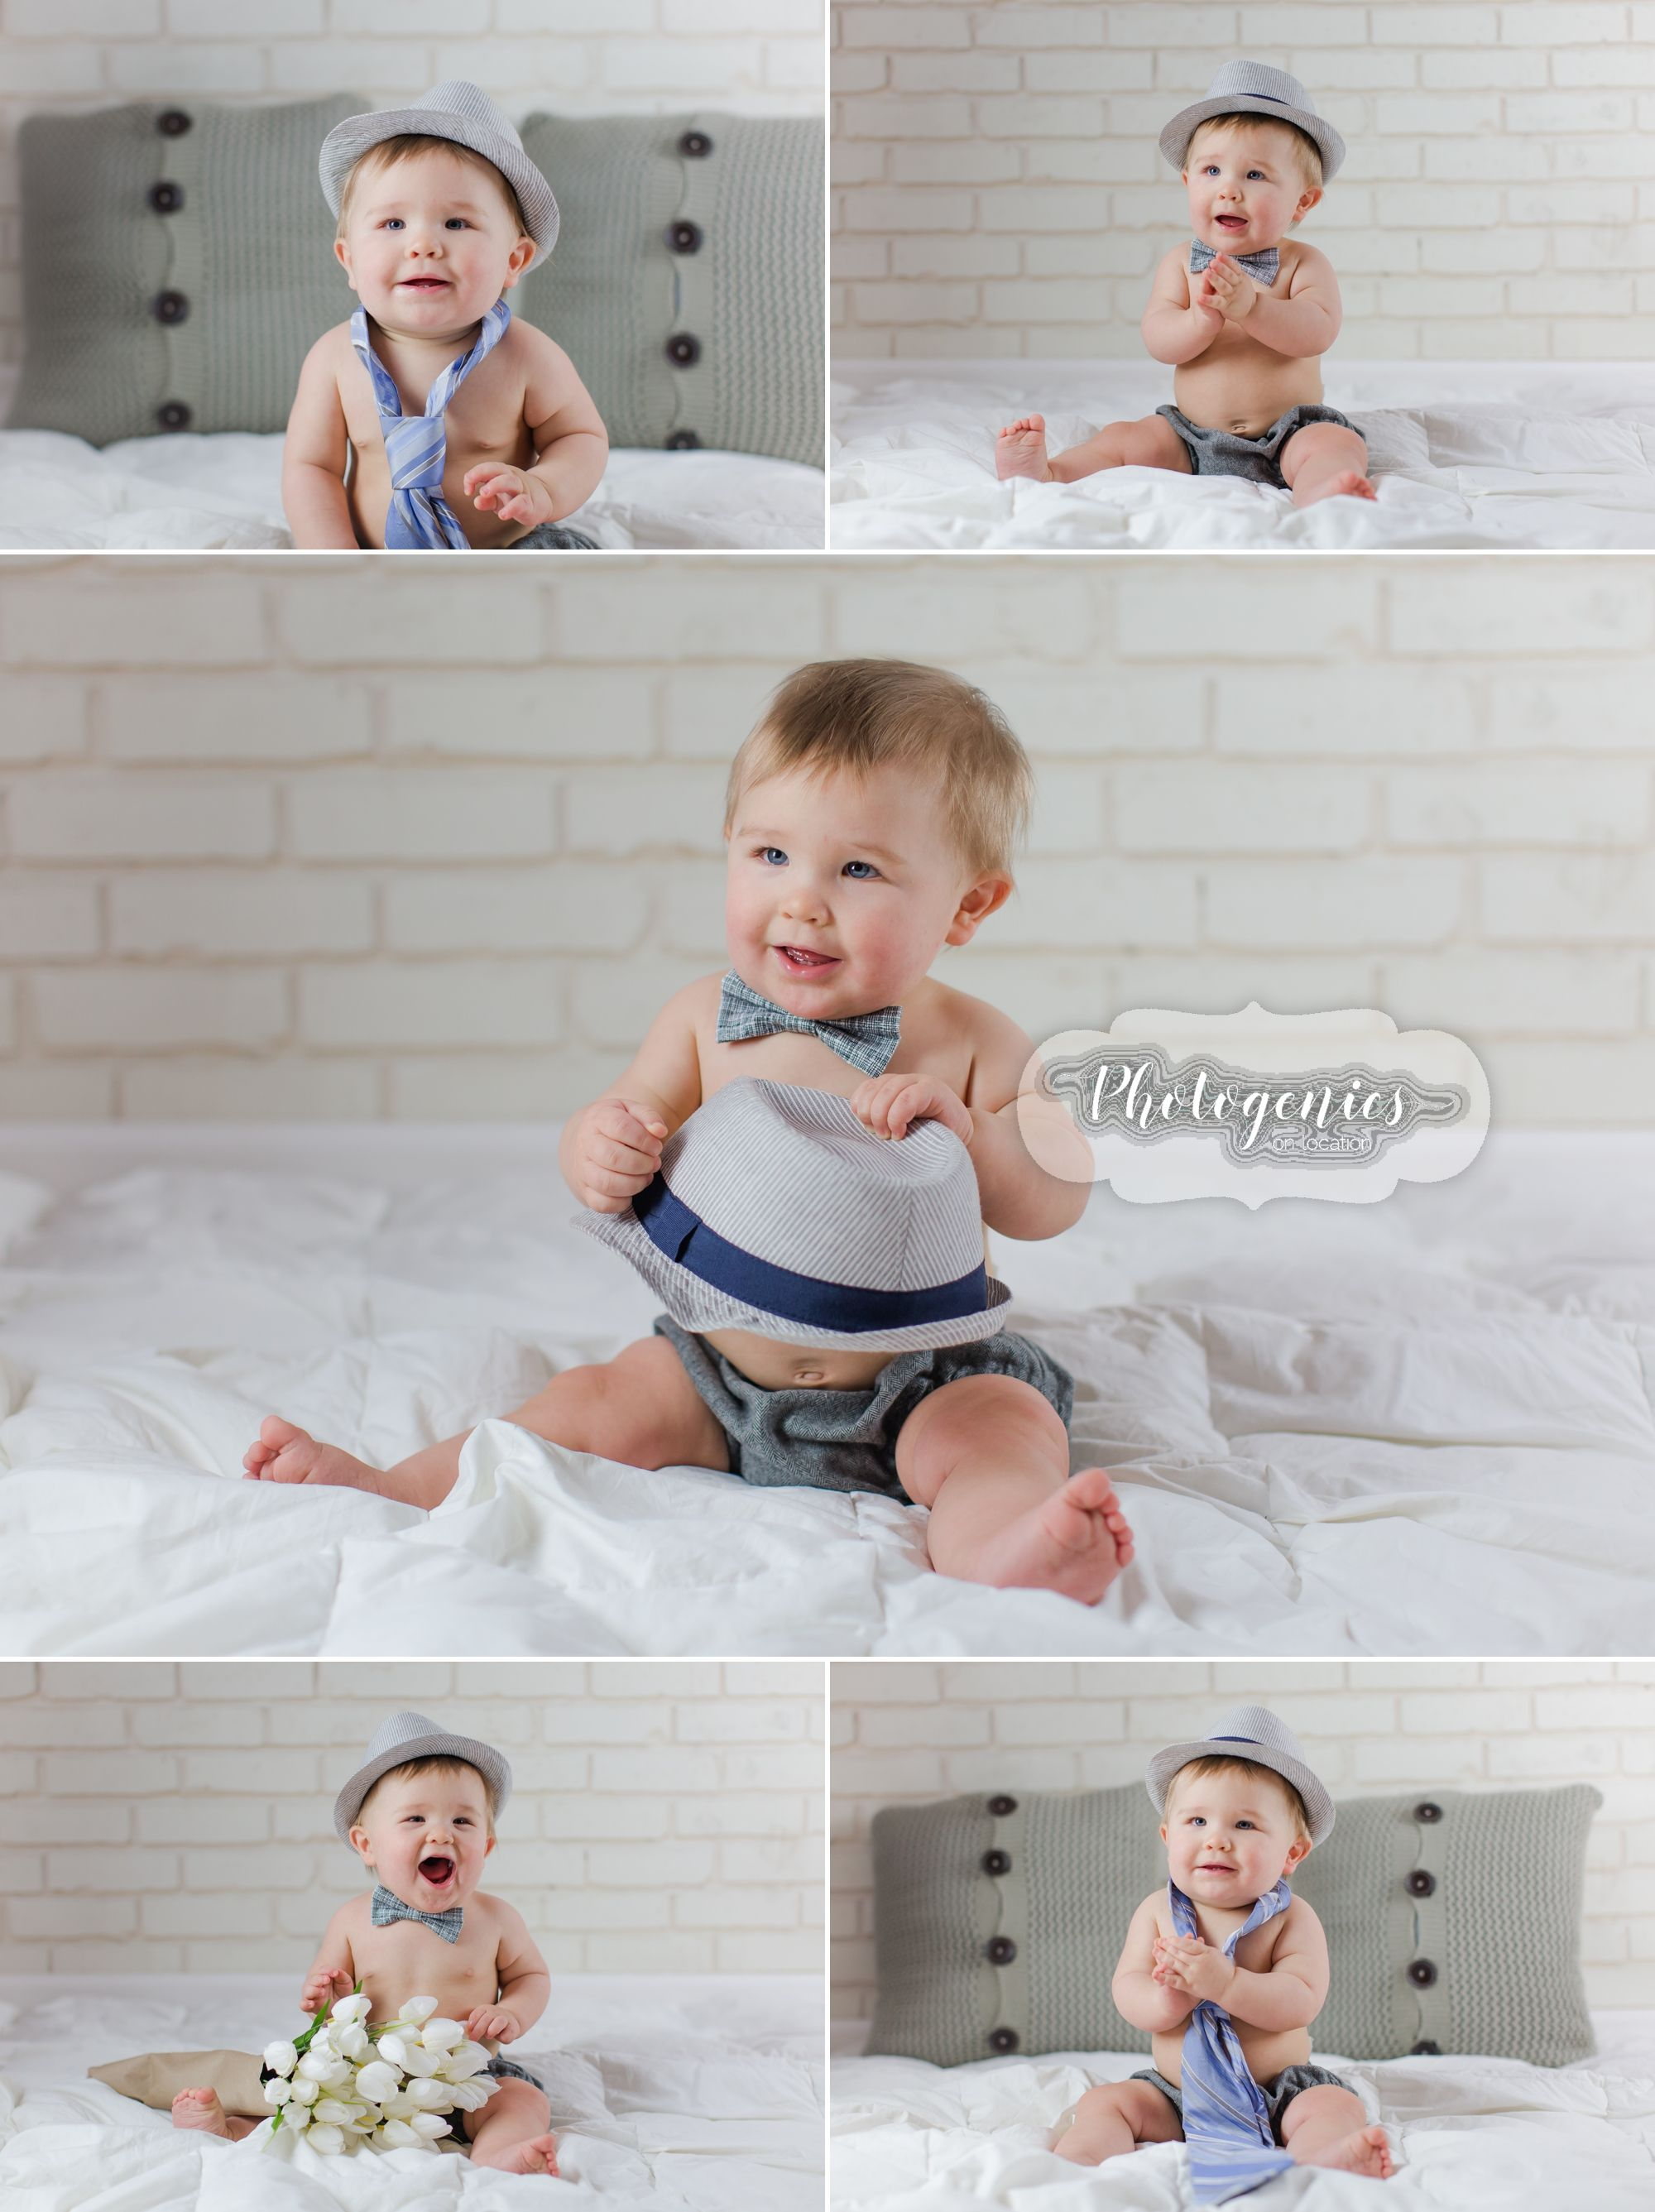 Photo ideas for 9 month old boy photography photo studio 9 month pics baby boy pics www photogenicsonlocation com